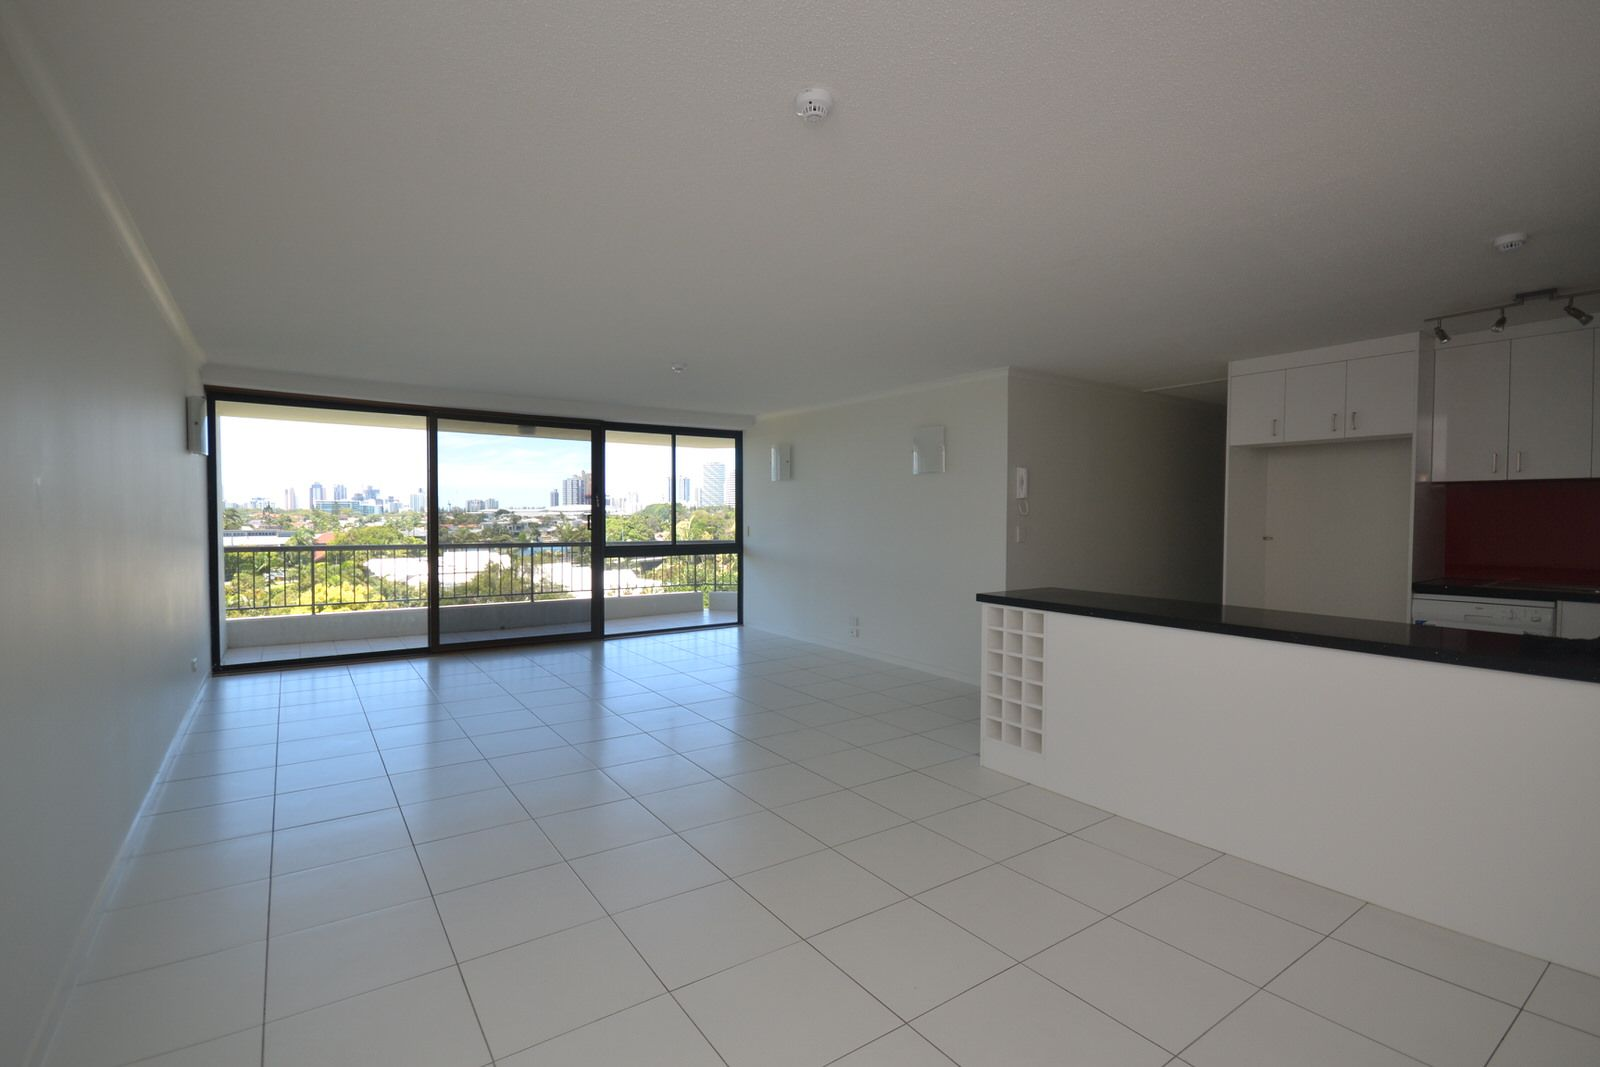 15/54 Hooker Boulevard, Mermaid Waters QLD 4218, Image 1